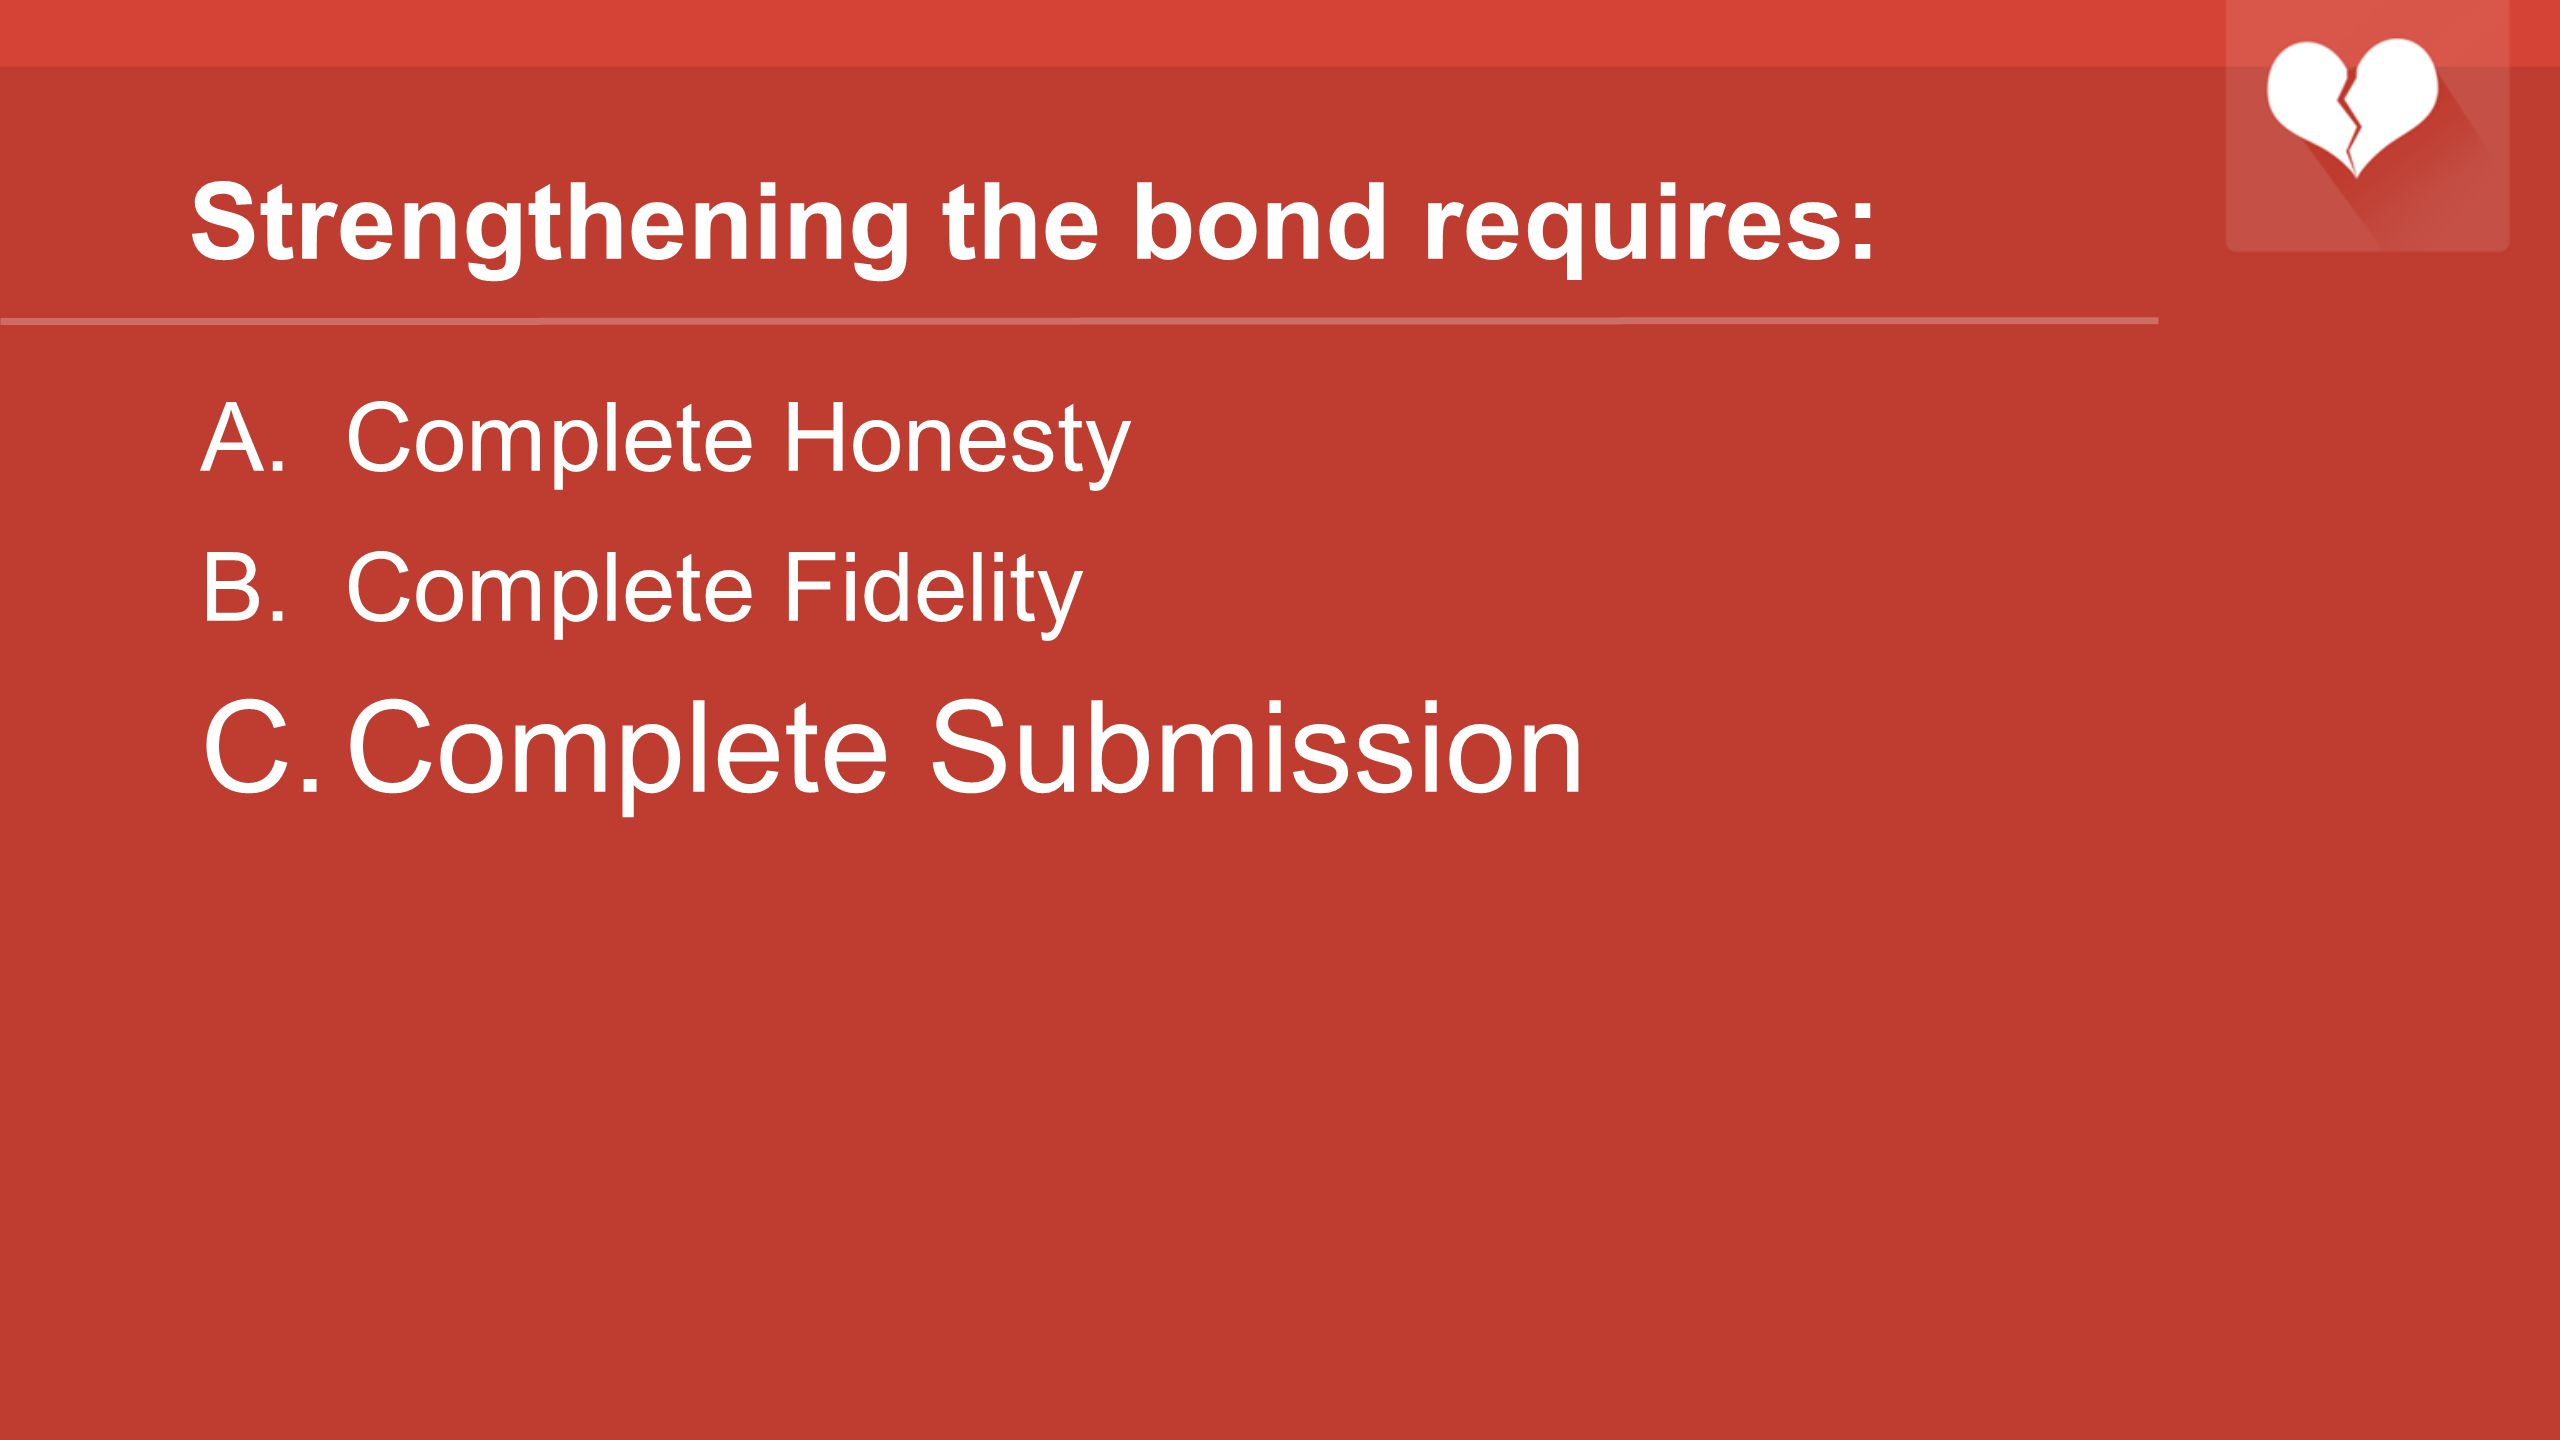 Strengthening the bond requires: